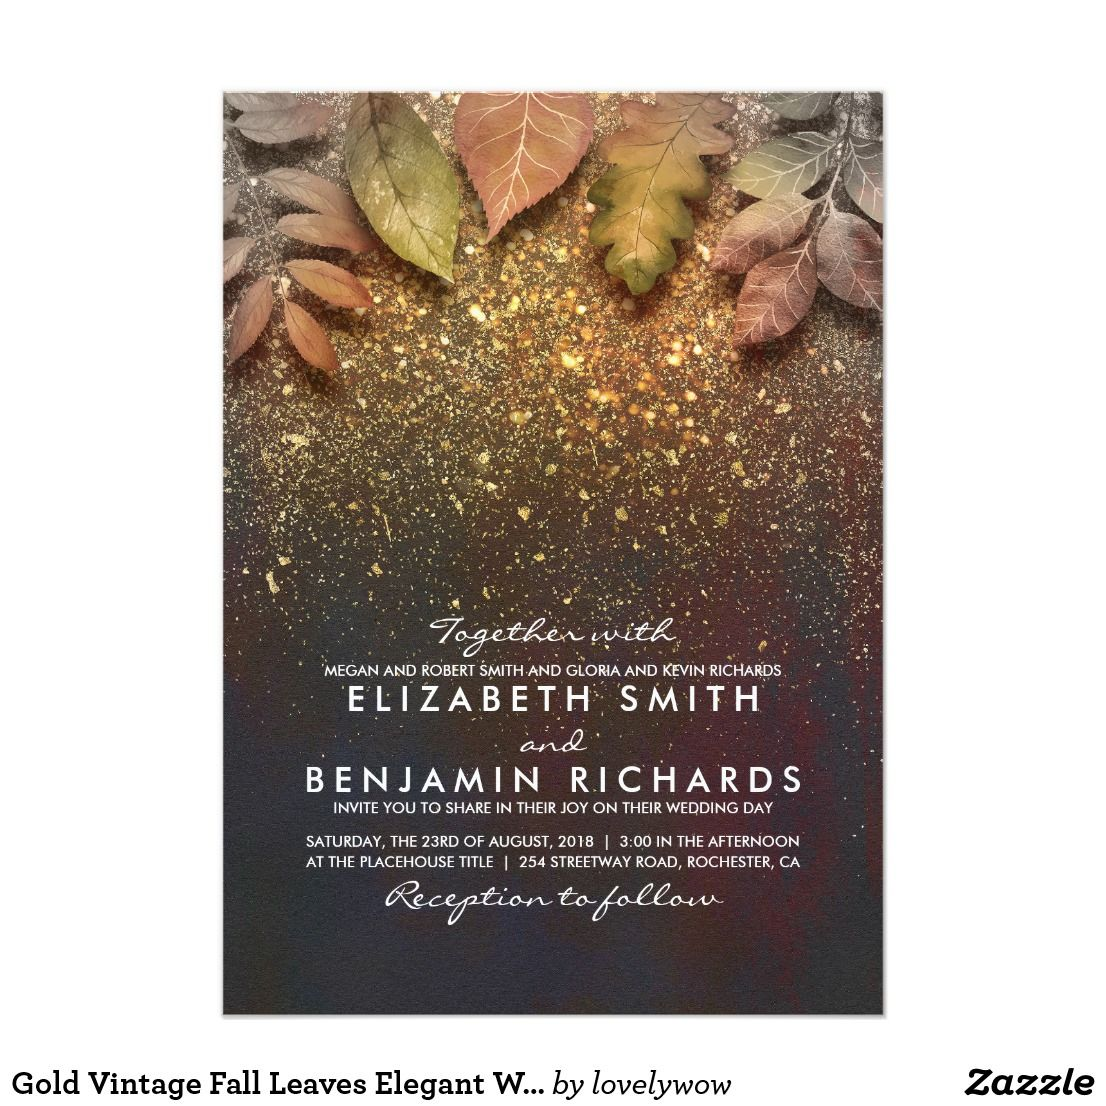 printable samples of wedding invitations%0A Gold Glitter Vintage Fall Leaves Wedding Card